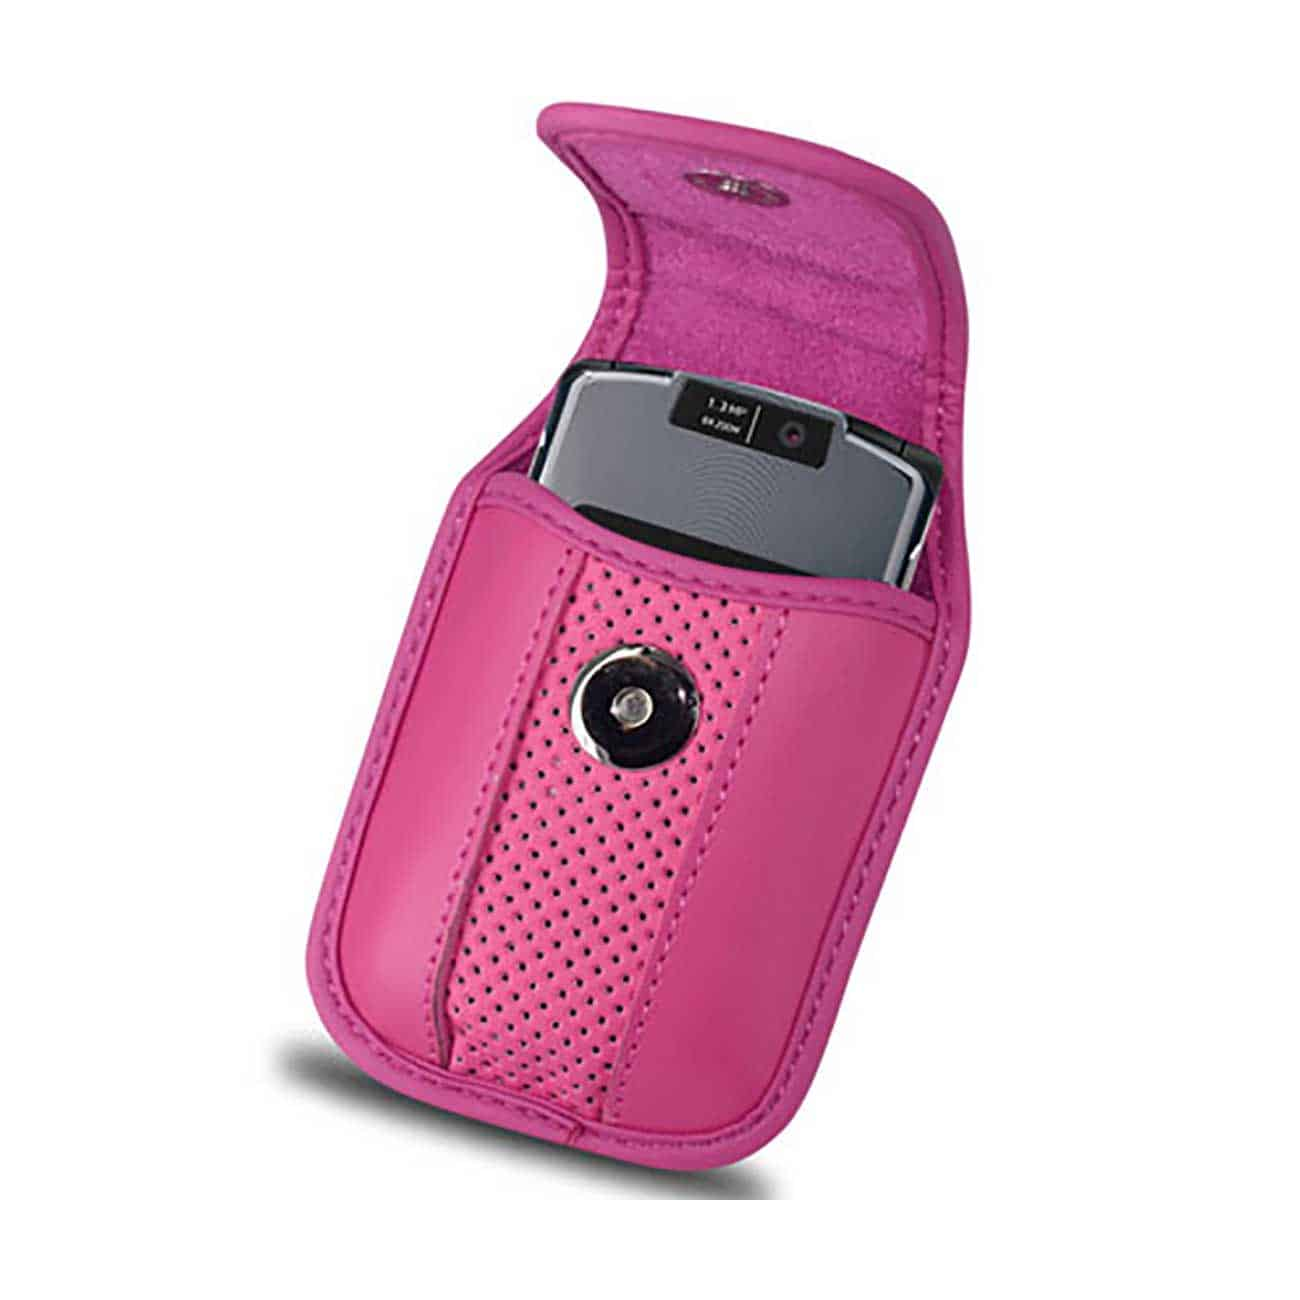 VERTICAL POUCH VP11A BLACKBERRY 8330 HOT PINK 4.3X2.4X0.6 INCHES